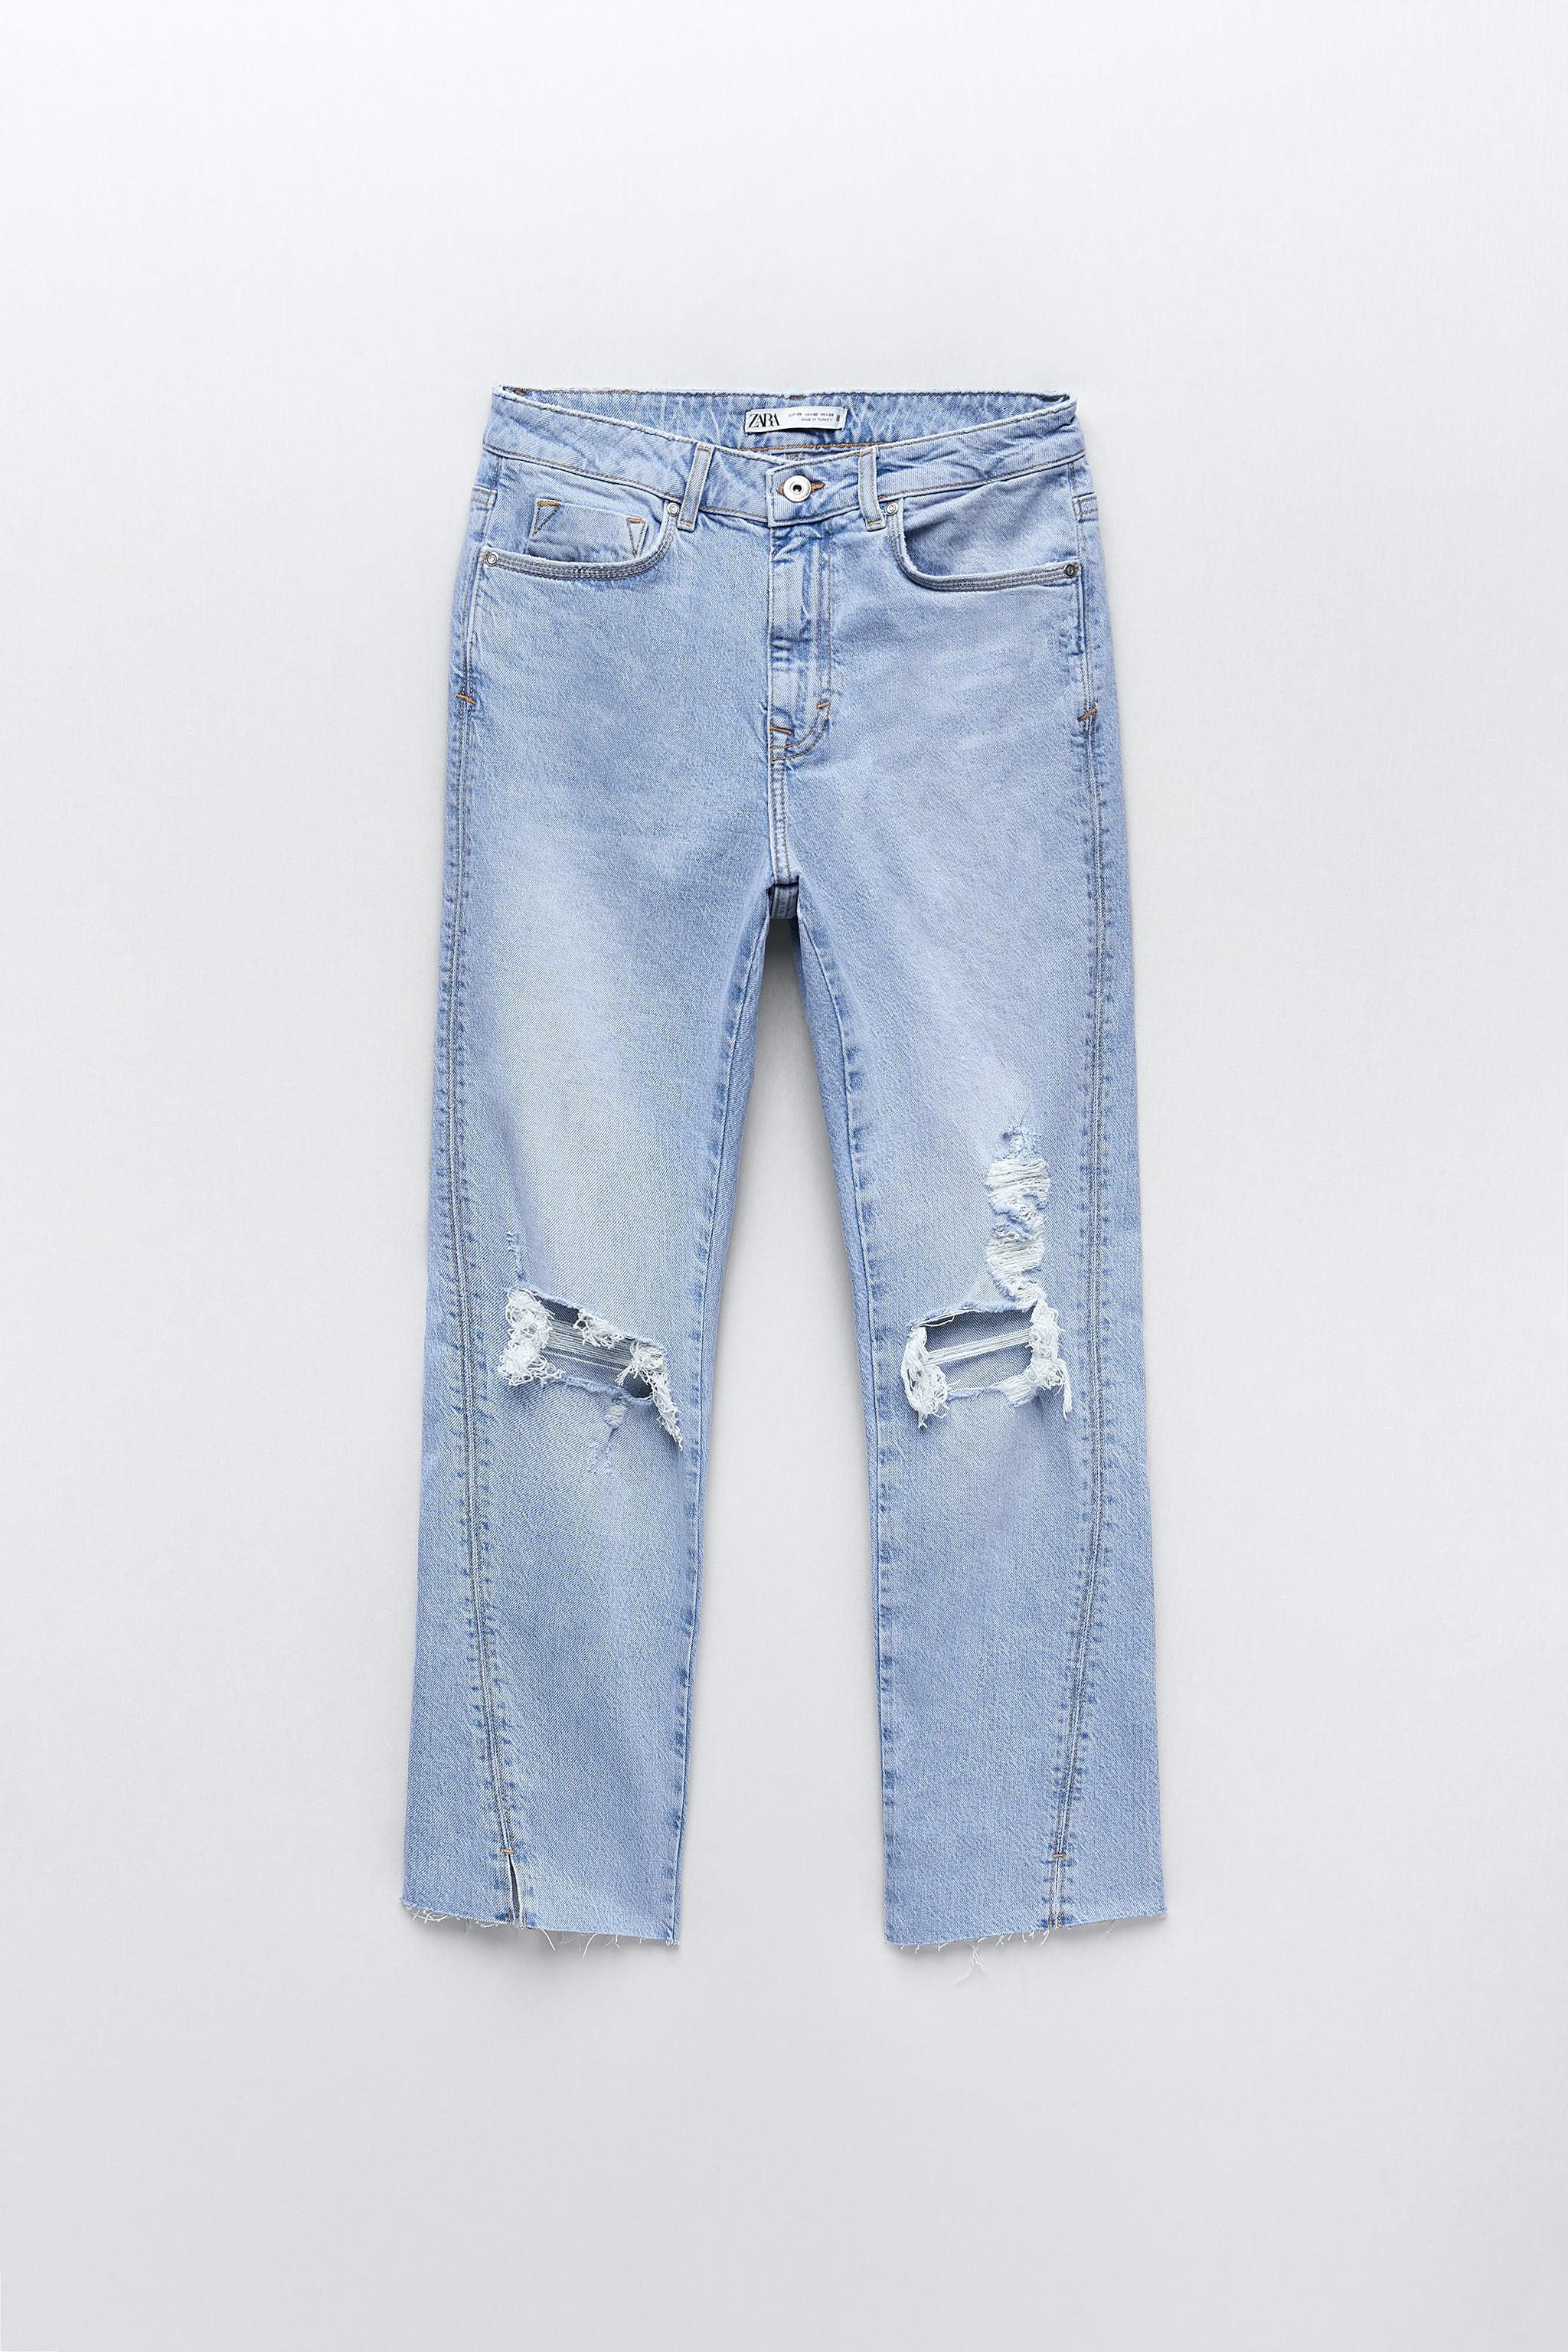 Z1975 HIGH RISE JEANS 7